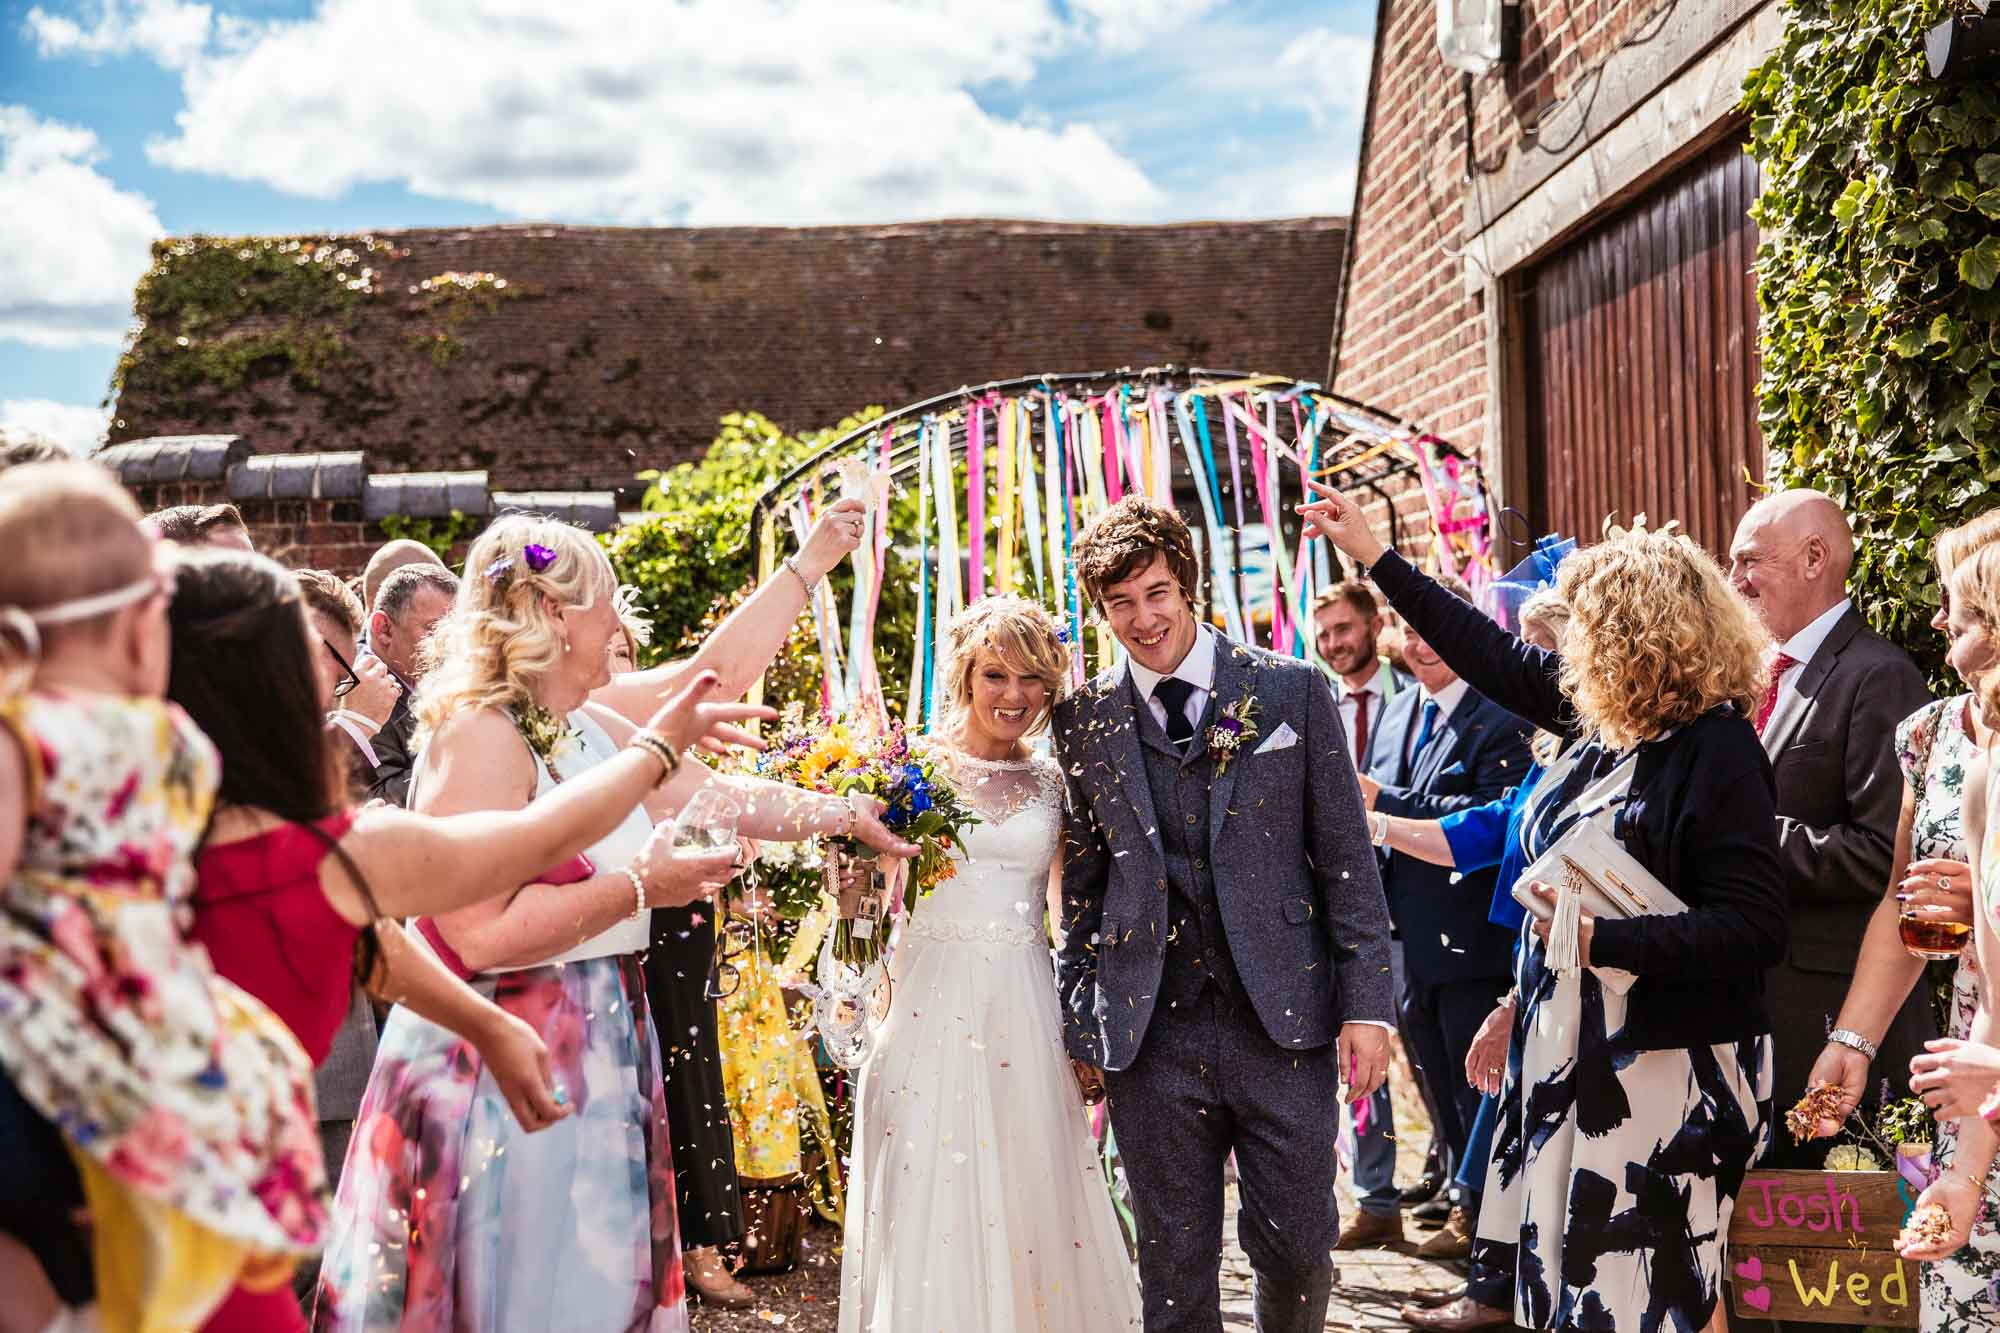 Colourful Vintage Barn Weddings